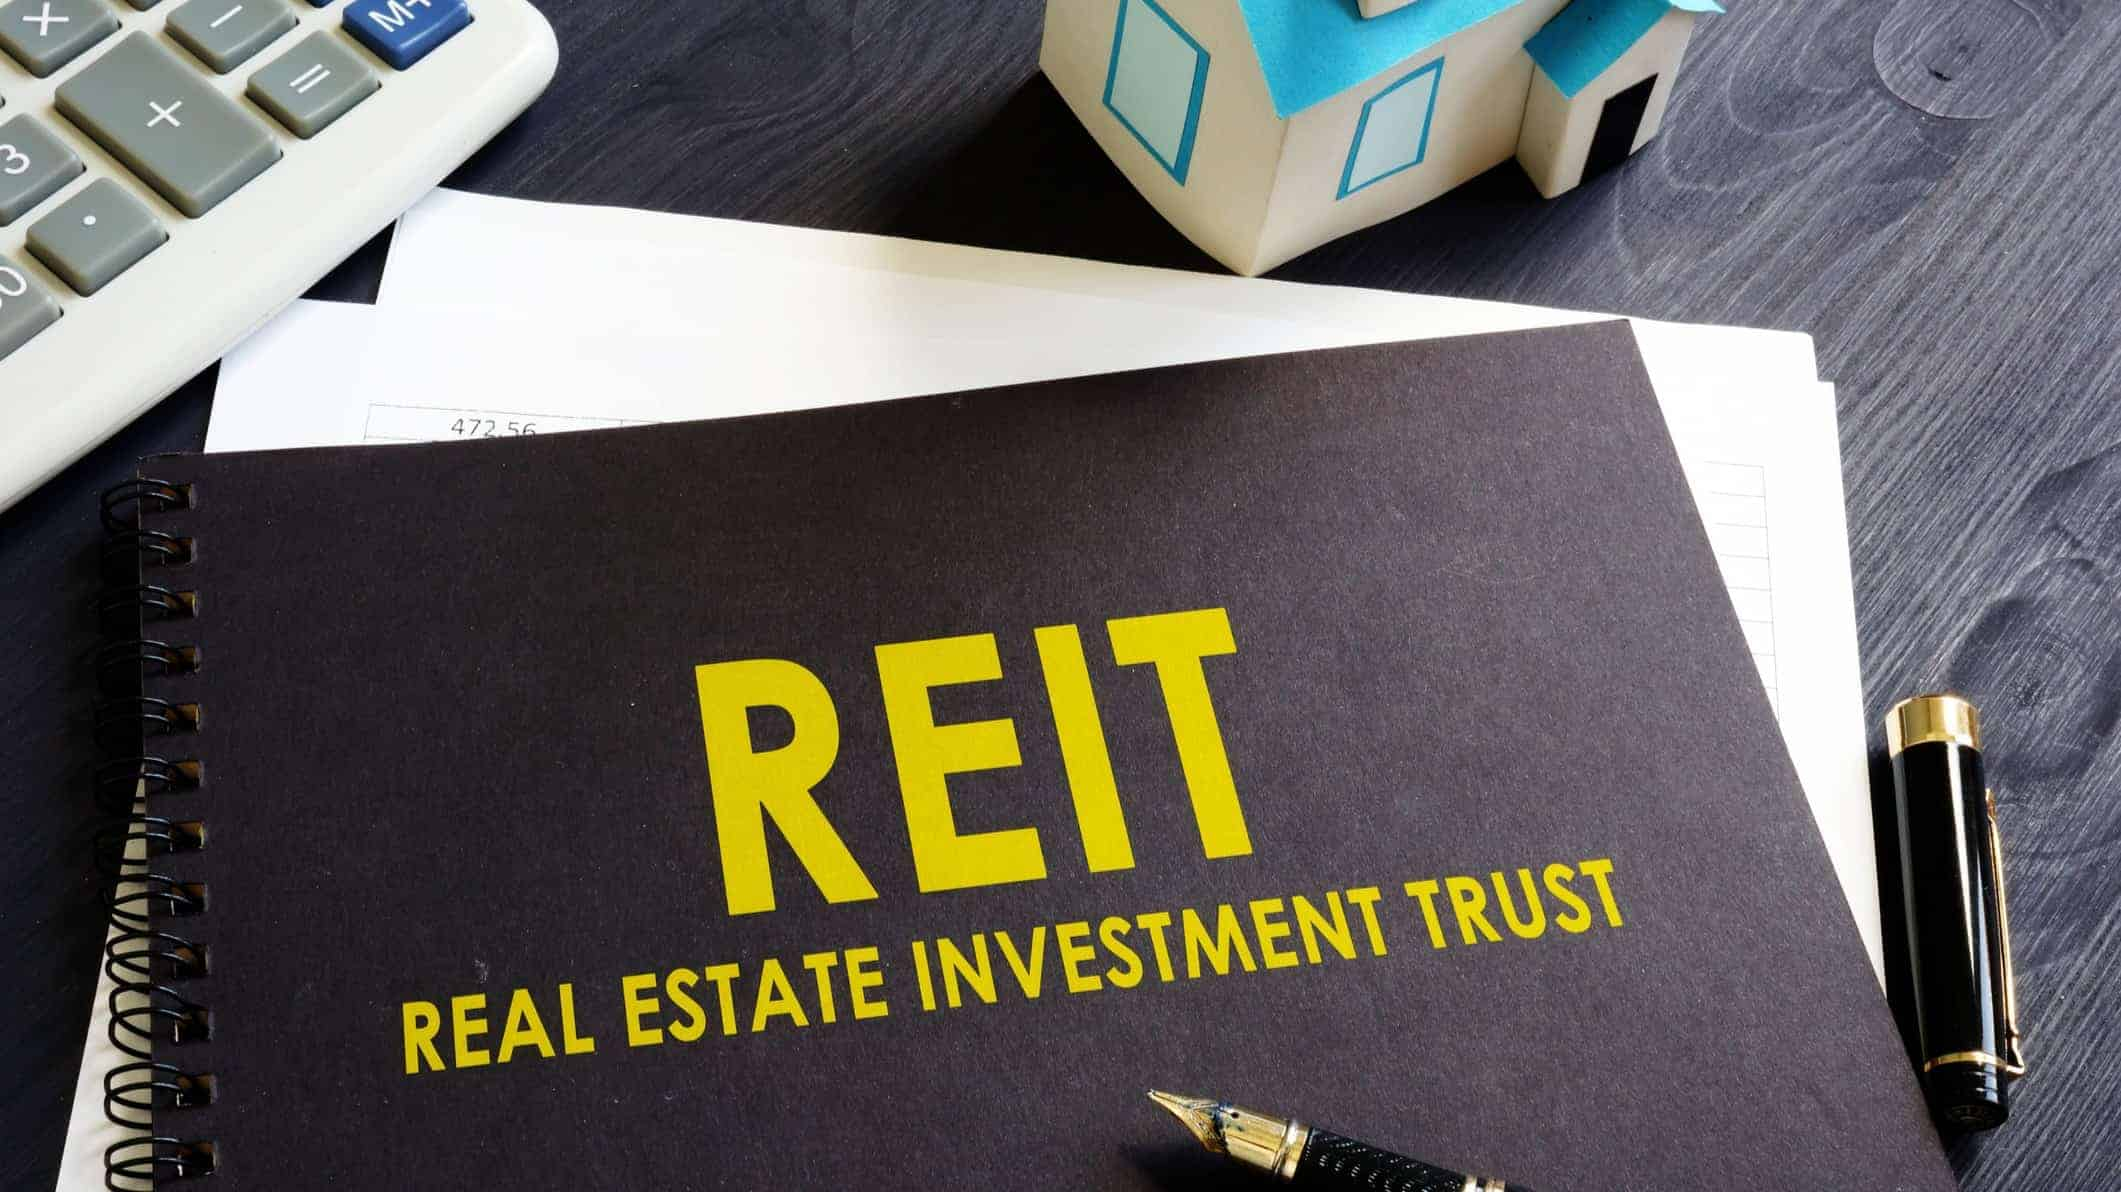 Folder for Real Estate Investment Trust such as Vicinity Centres